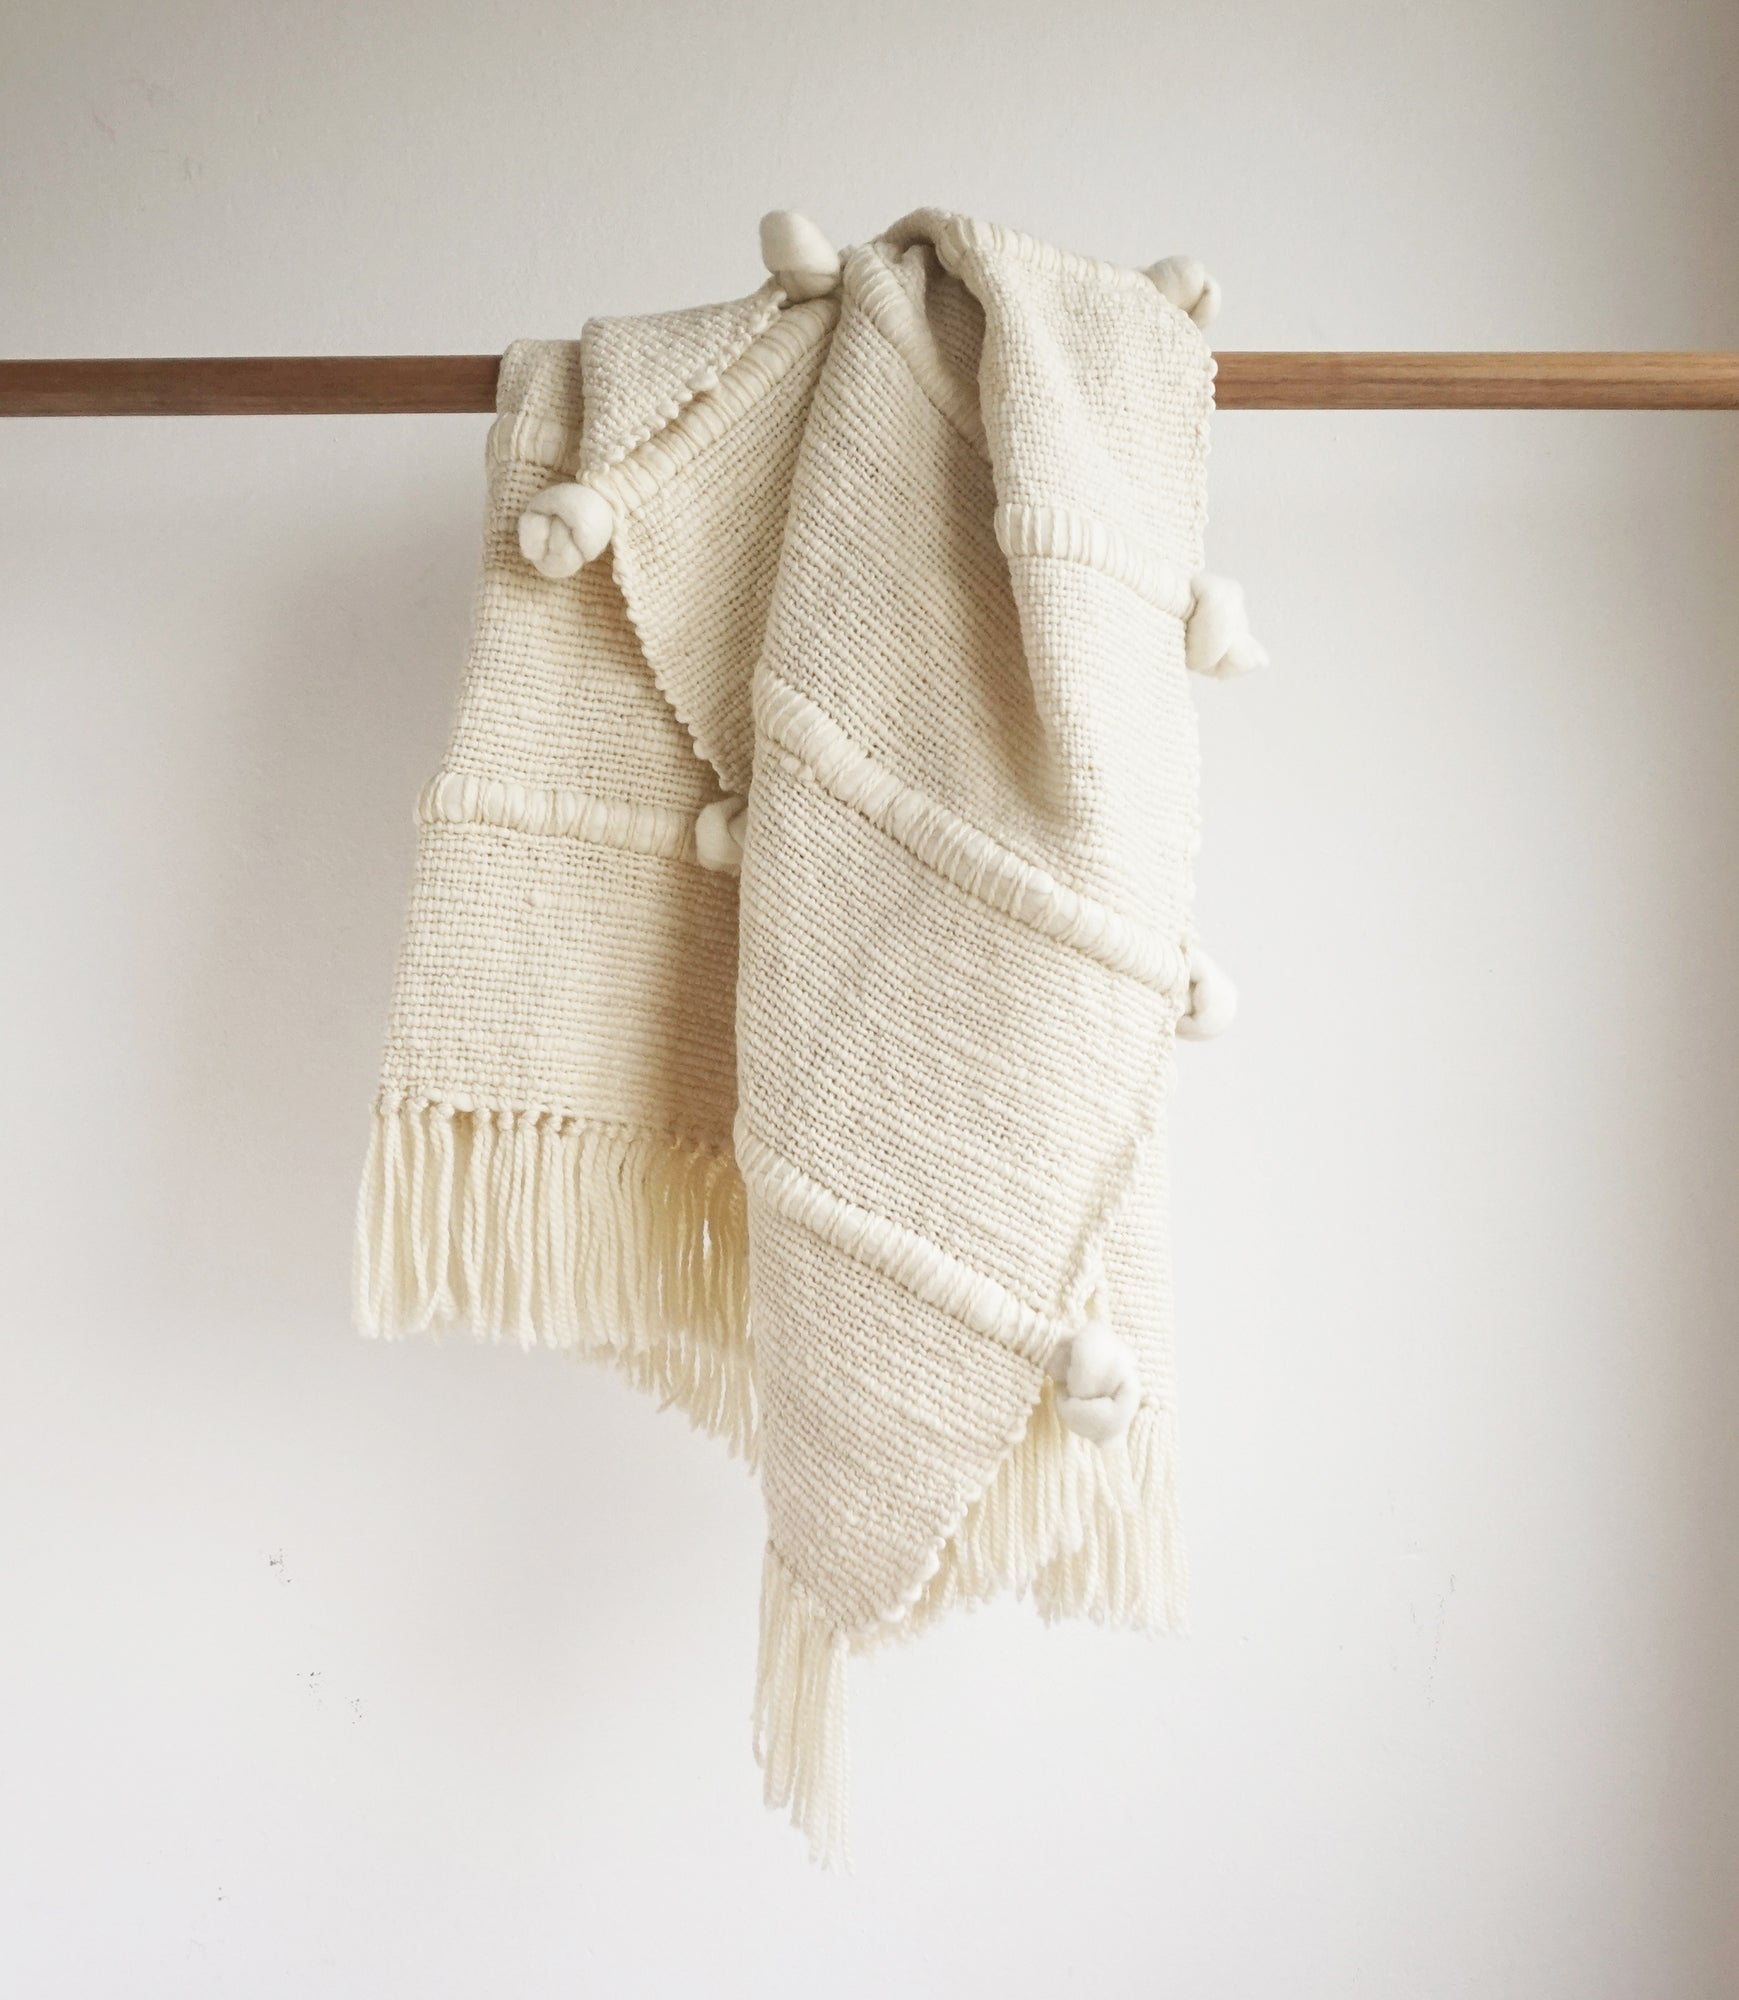 KNOT Throw Blanket in Ivory